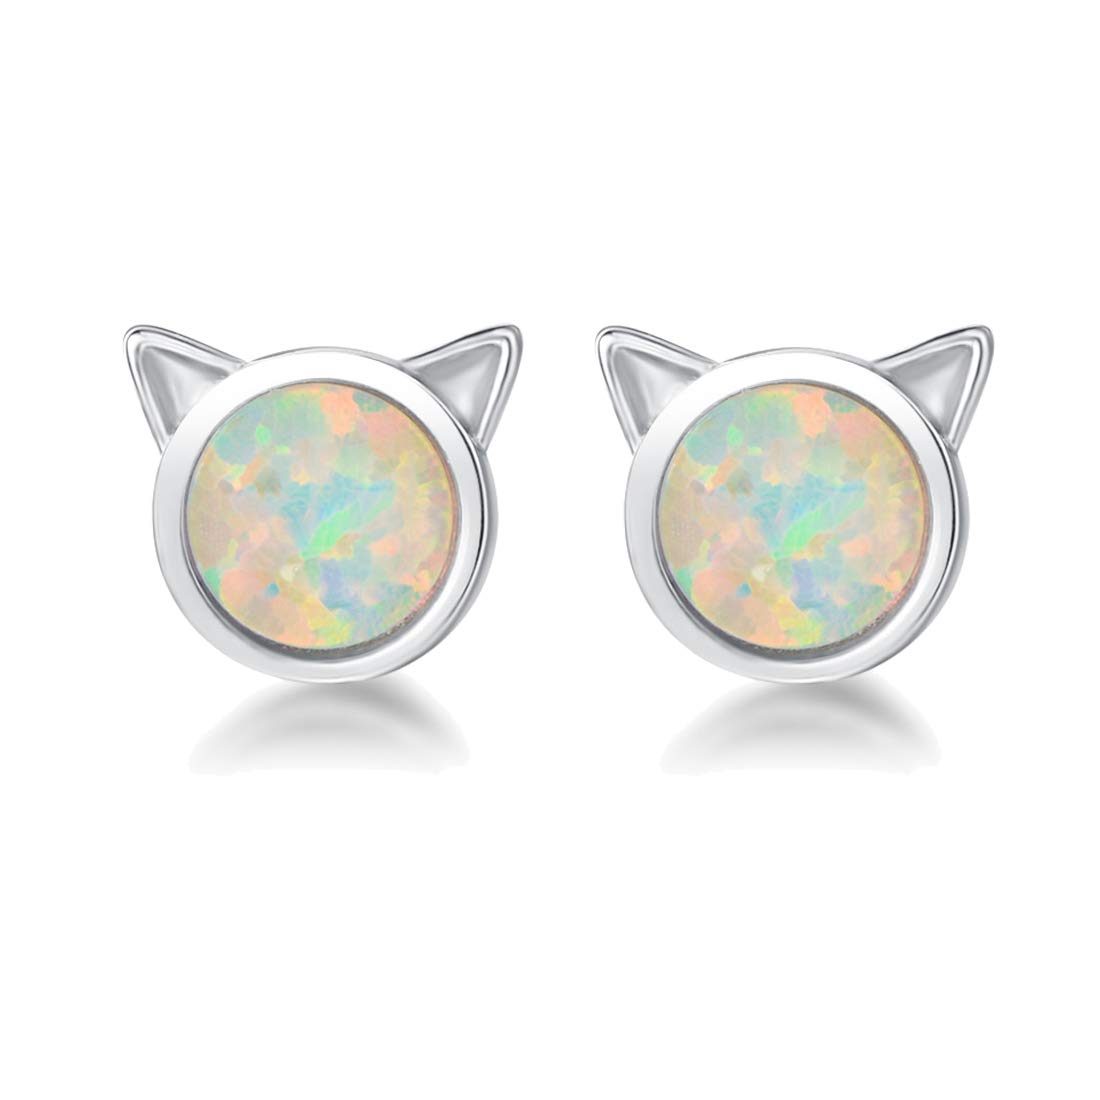 Mother's Day Gift | FANCIME Sterling Silver Cat Earrings/Necklace 6mm Created Fire Opal Tiny Cute Dot Round Disc Dainty Minimalist Jewelry Set for Women Girls